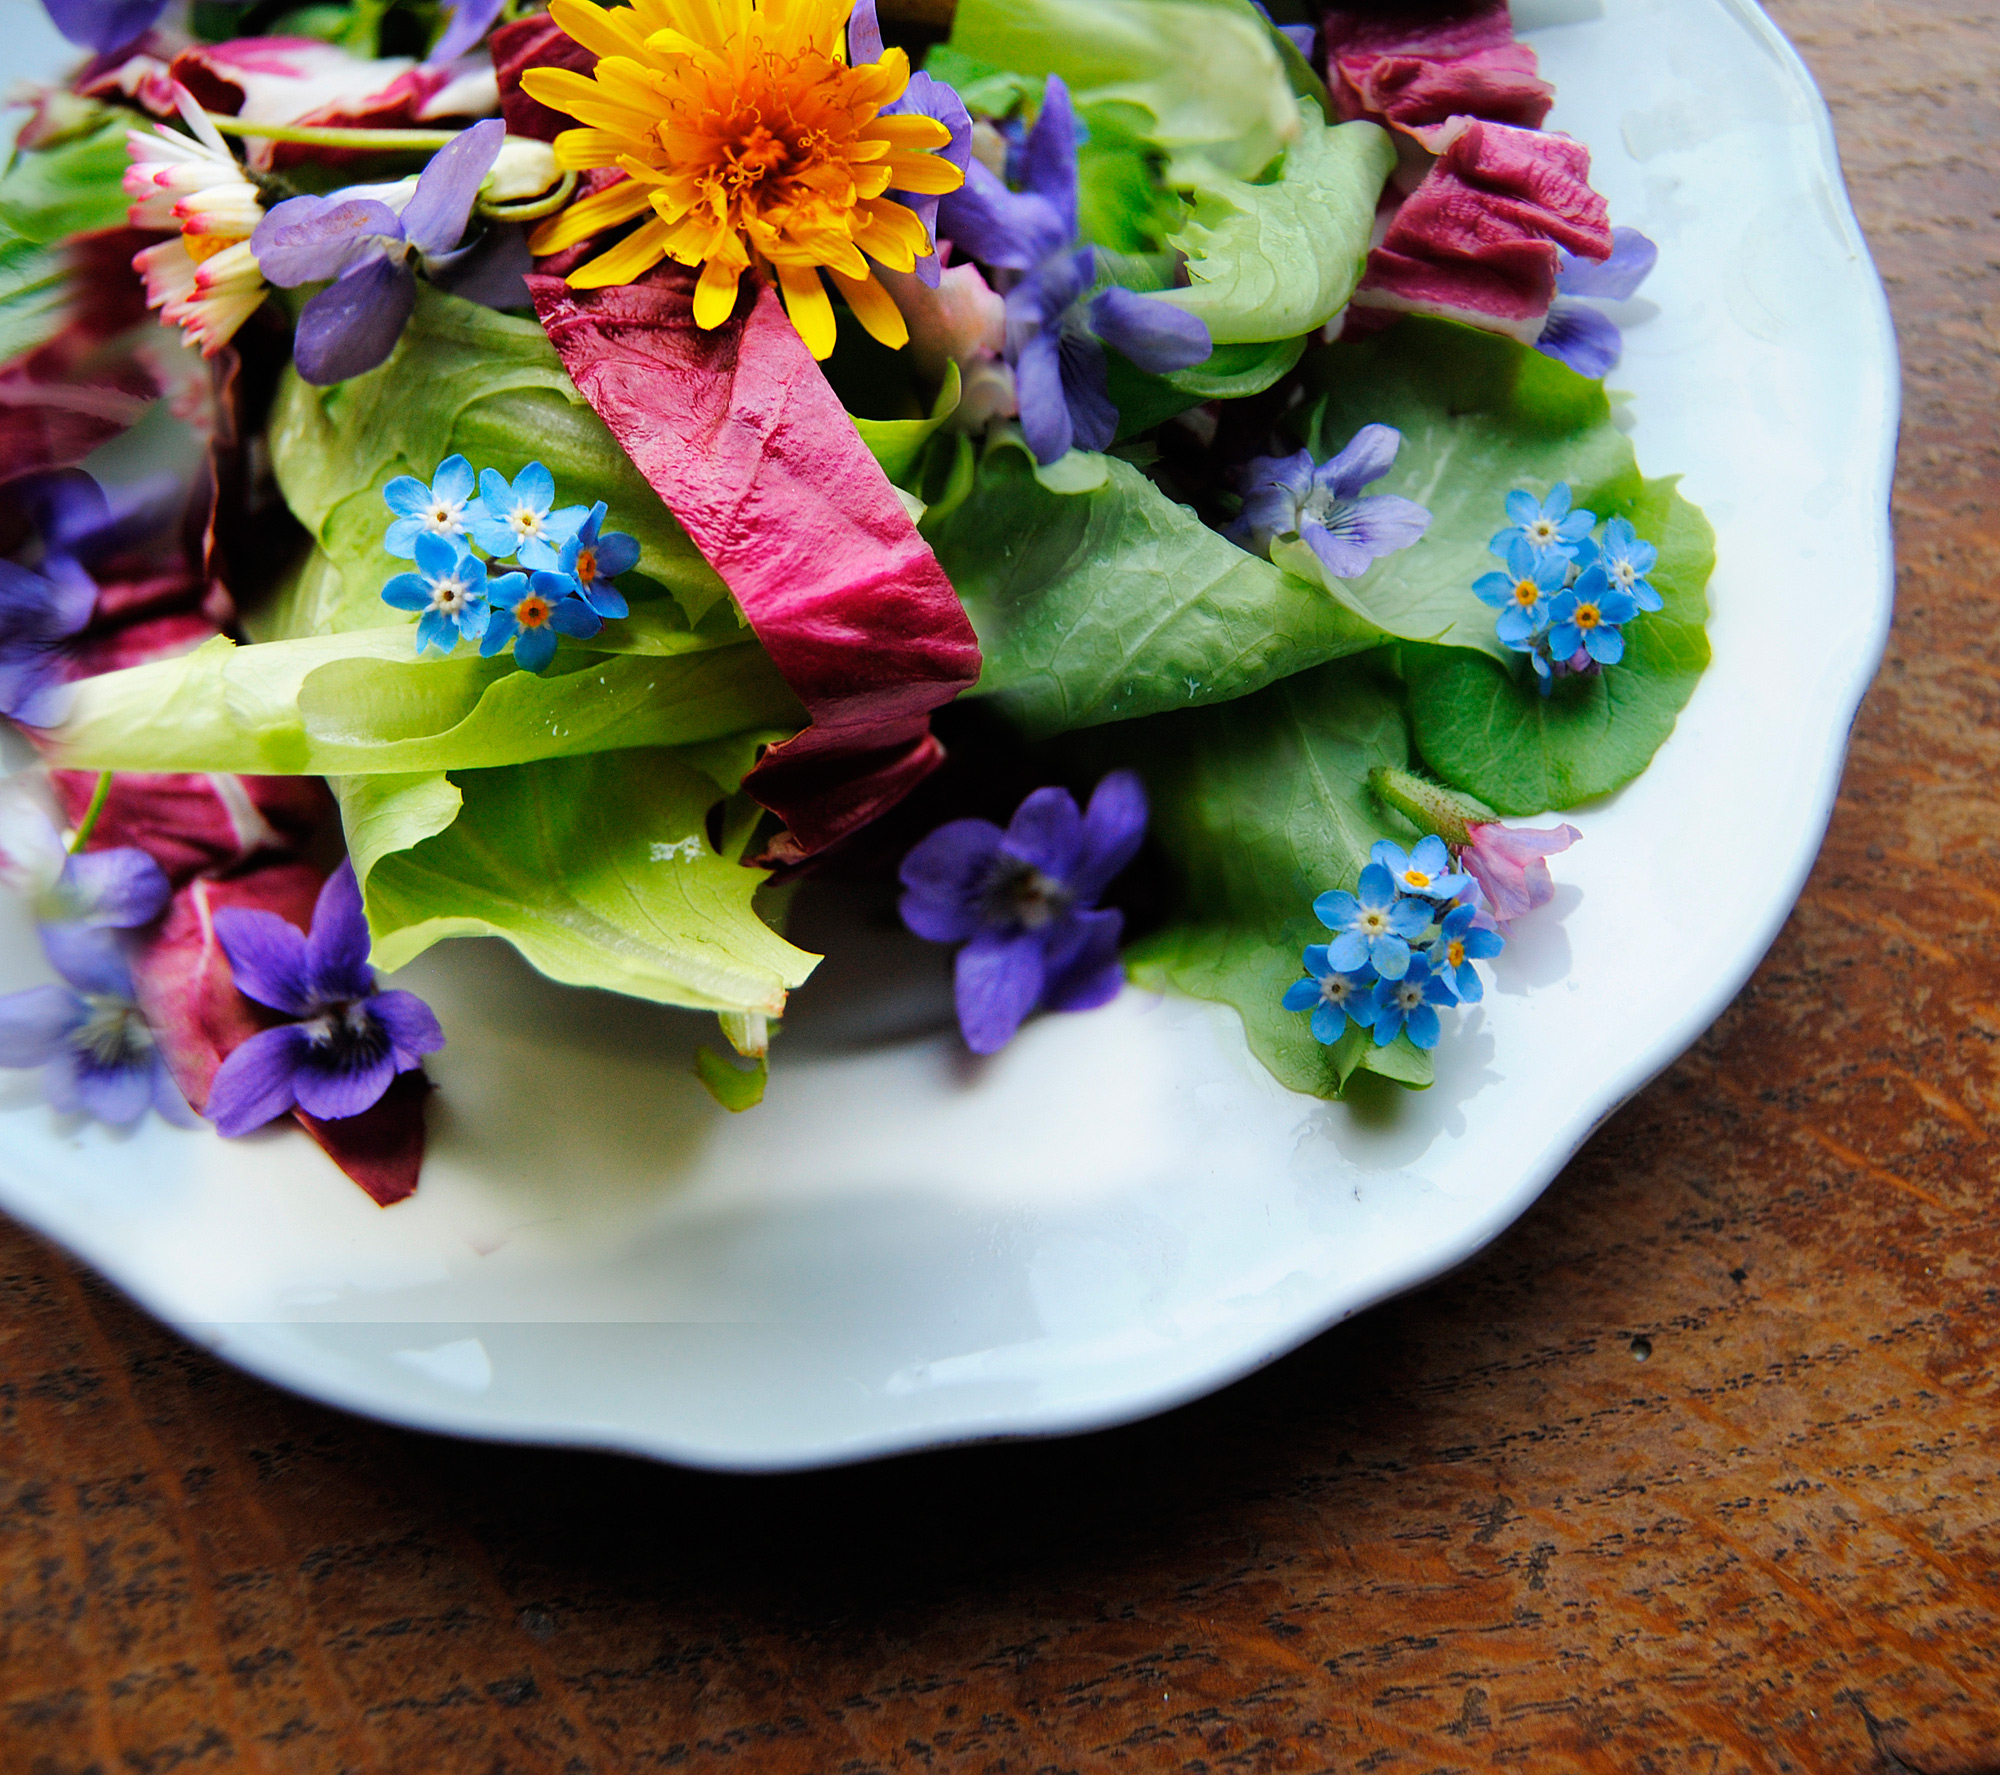 5 Beautiful Flowers You Probably Didn't Know You Could Eat